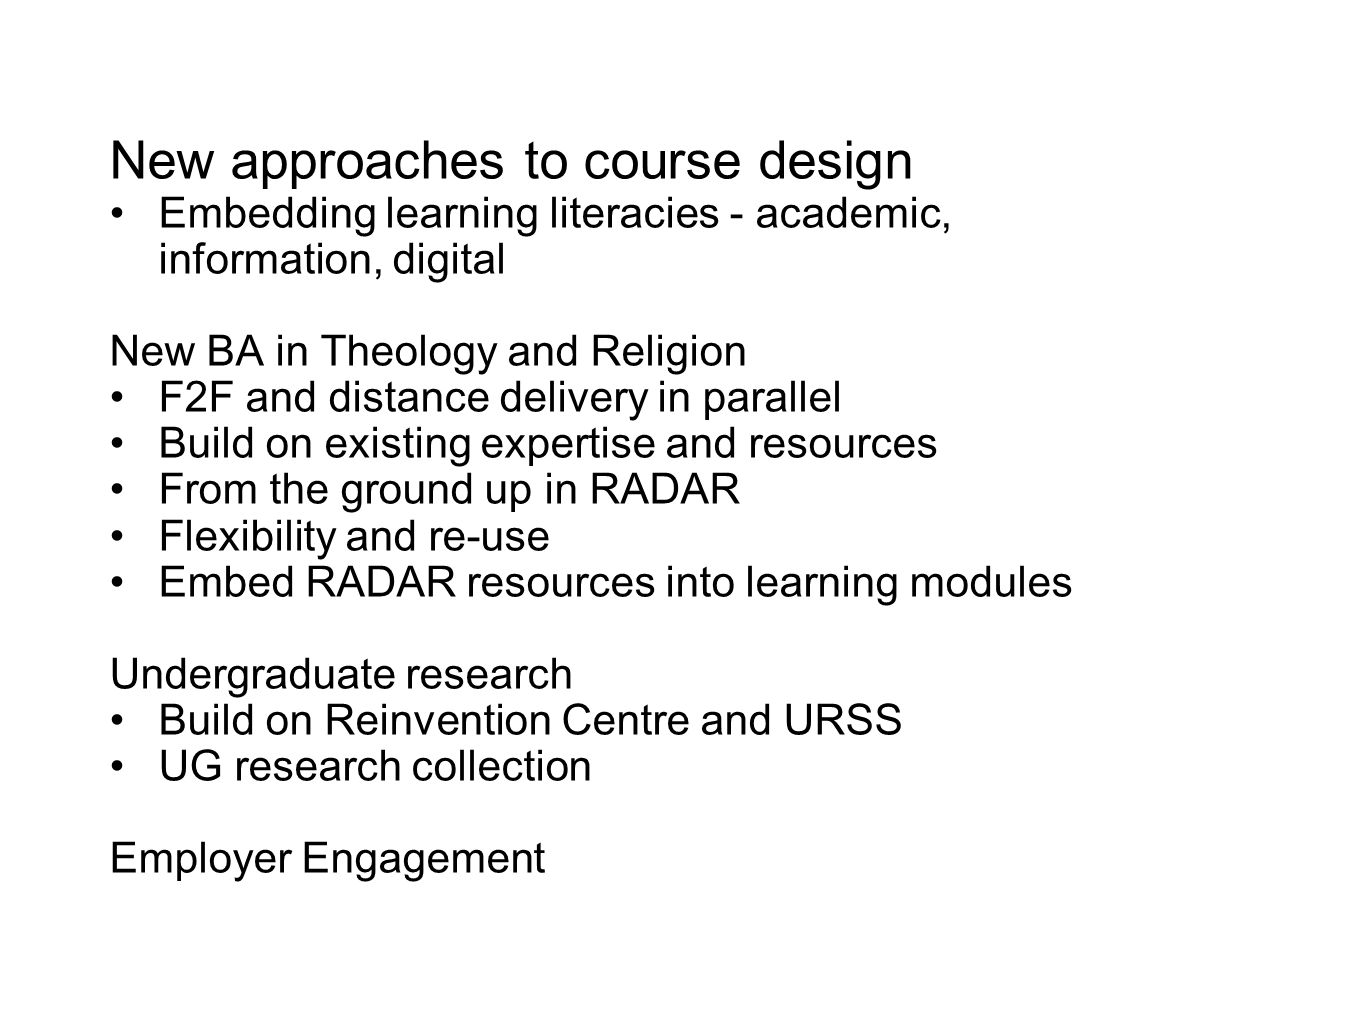 New approaches to course design Embedding learning literacies - academic, information, digital New BA in Theology and Religion F2F and distance delivery in parallel Build on existing expertise and resources From the ground up in RADAR Flexibility and re-use Embed RADAR resources into learning modules Undergraduate research Build on Reinvention Centre and URSS UG research collection Employer Engagement